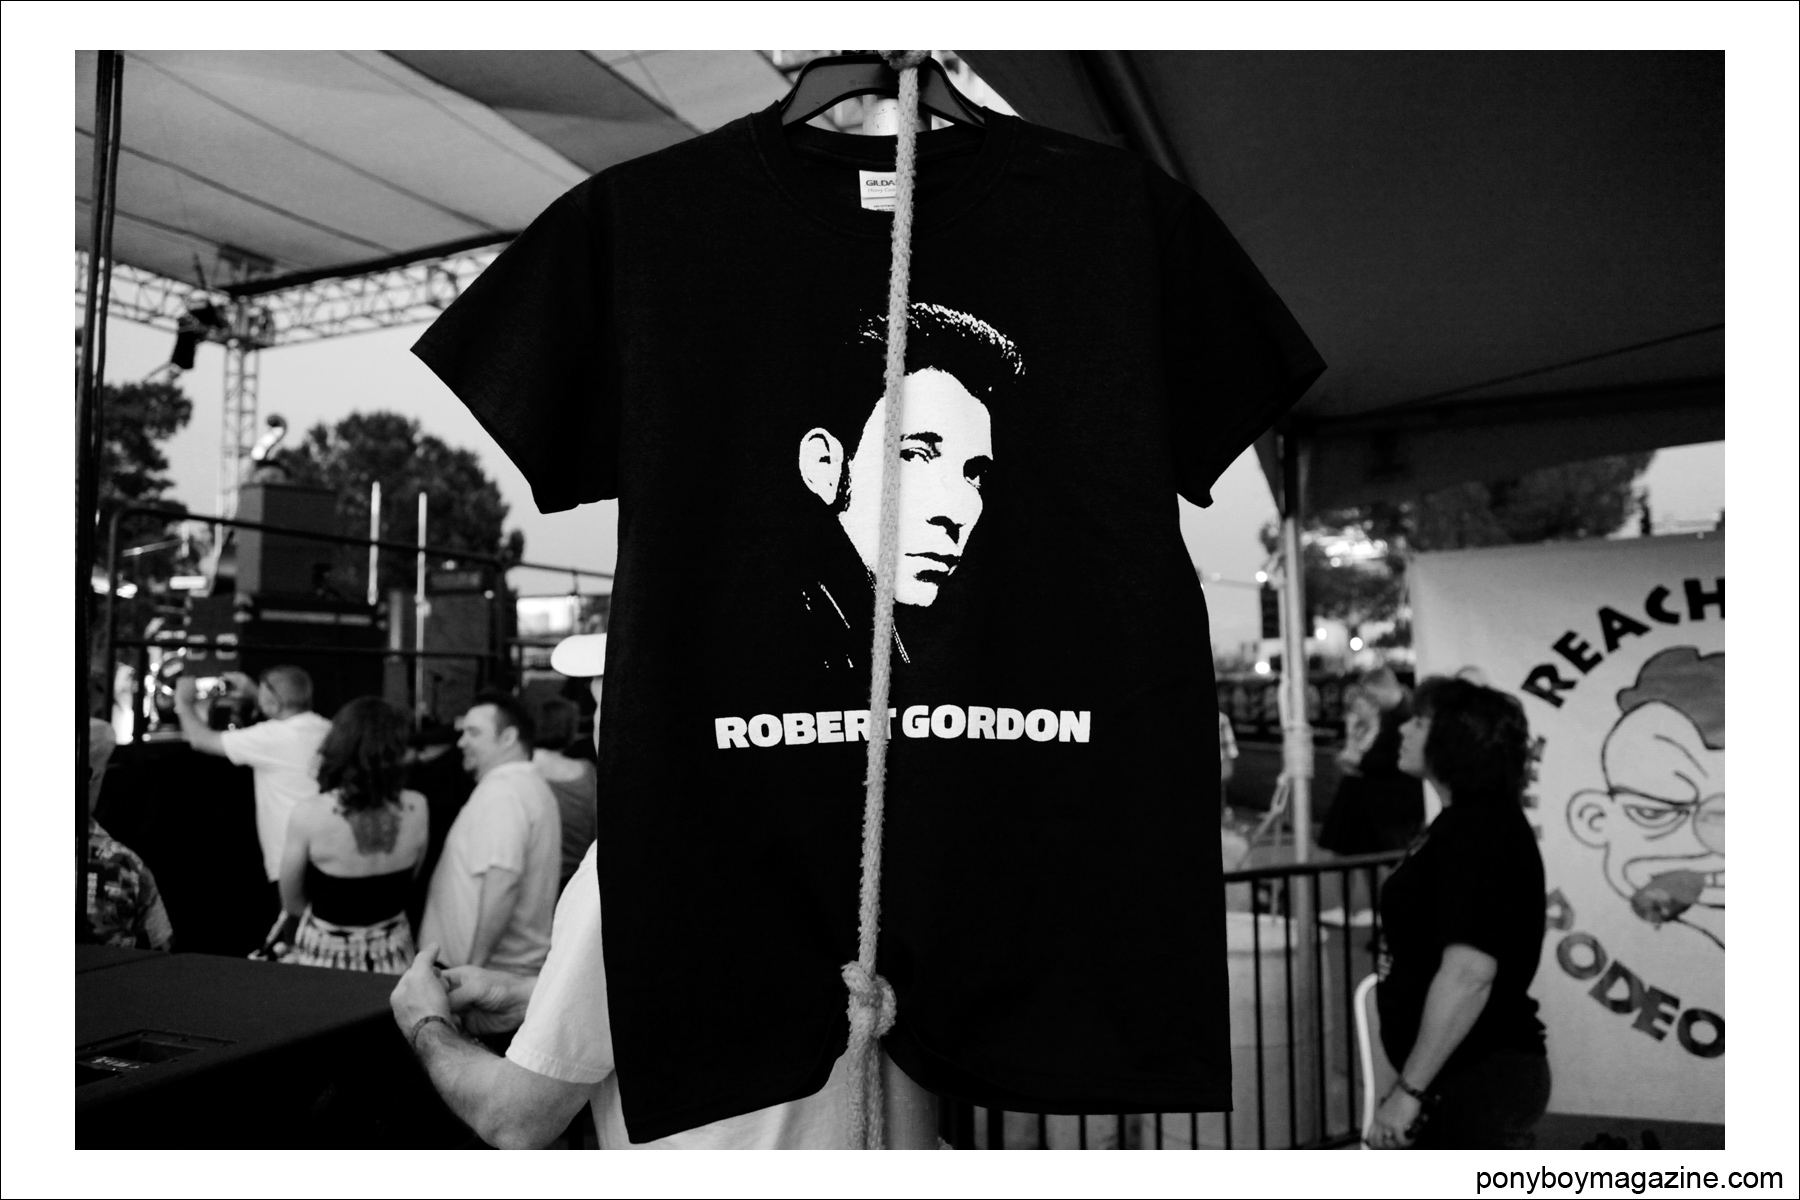 A t-shirt of rockabilly legend Robert Gordon. Photographed at Tom Ingram's Viva Las Vegas 17 car show by Alexander Thompson for Ponyboy Magazine.